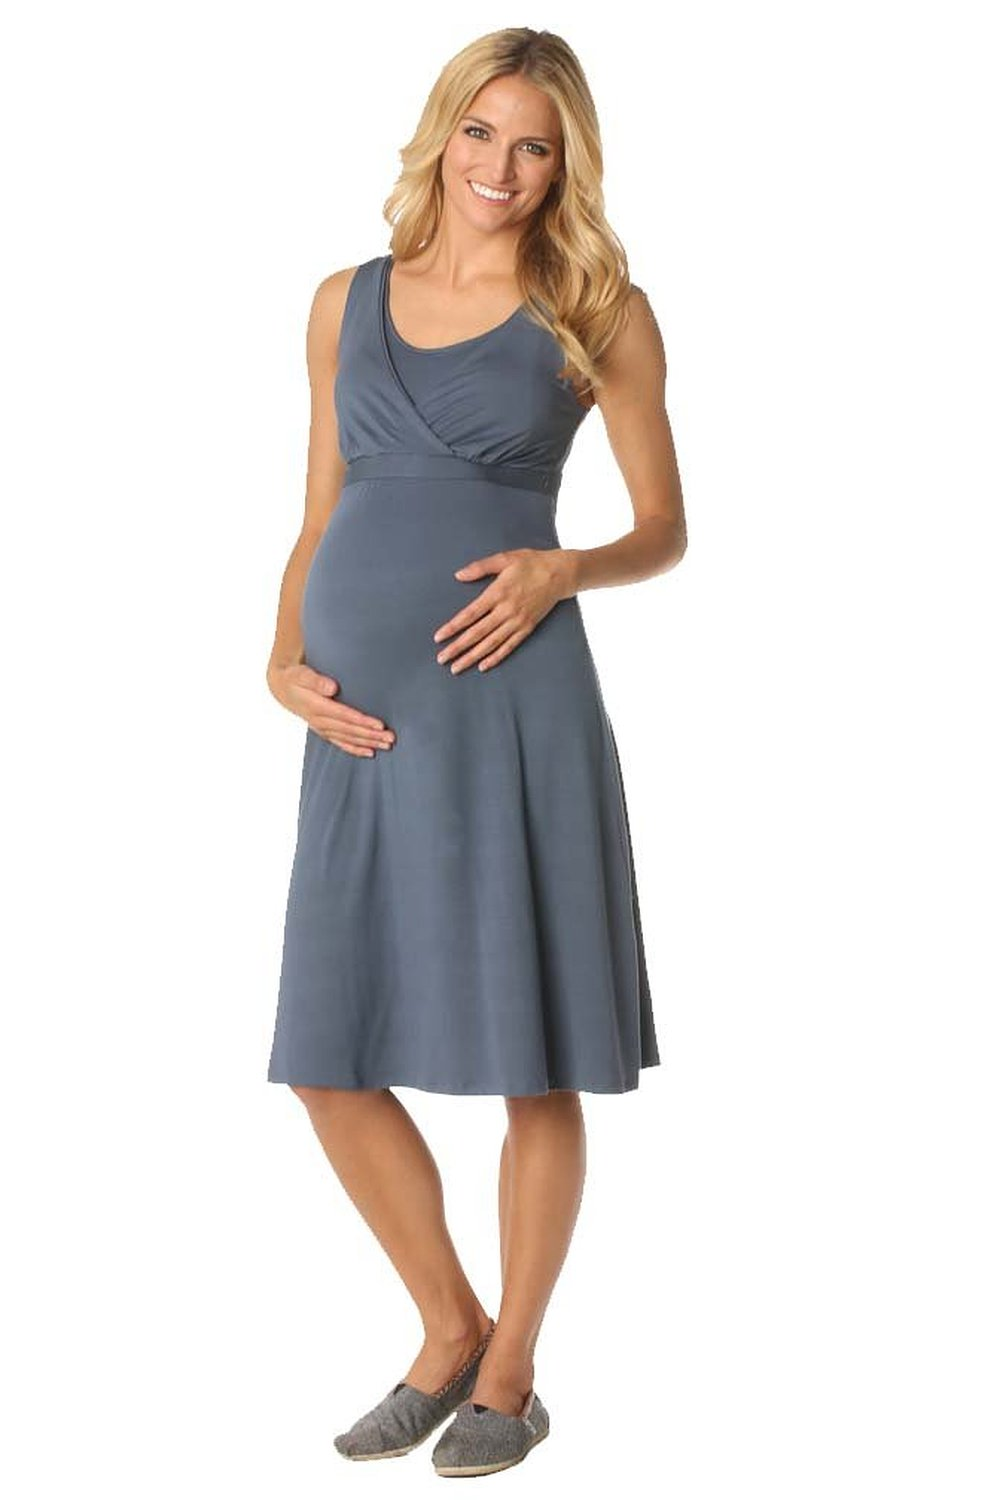 majamas-market-nursing-dress-tempest-maternity.jpg